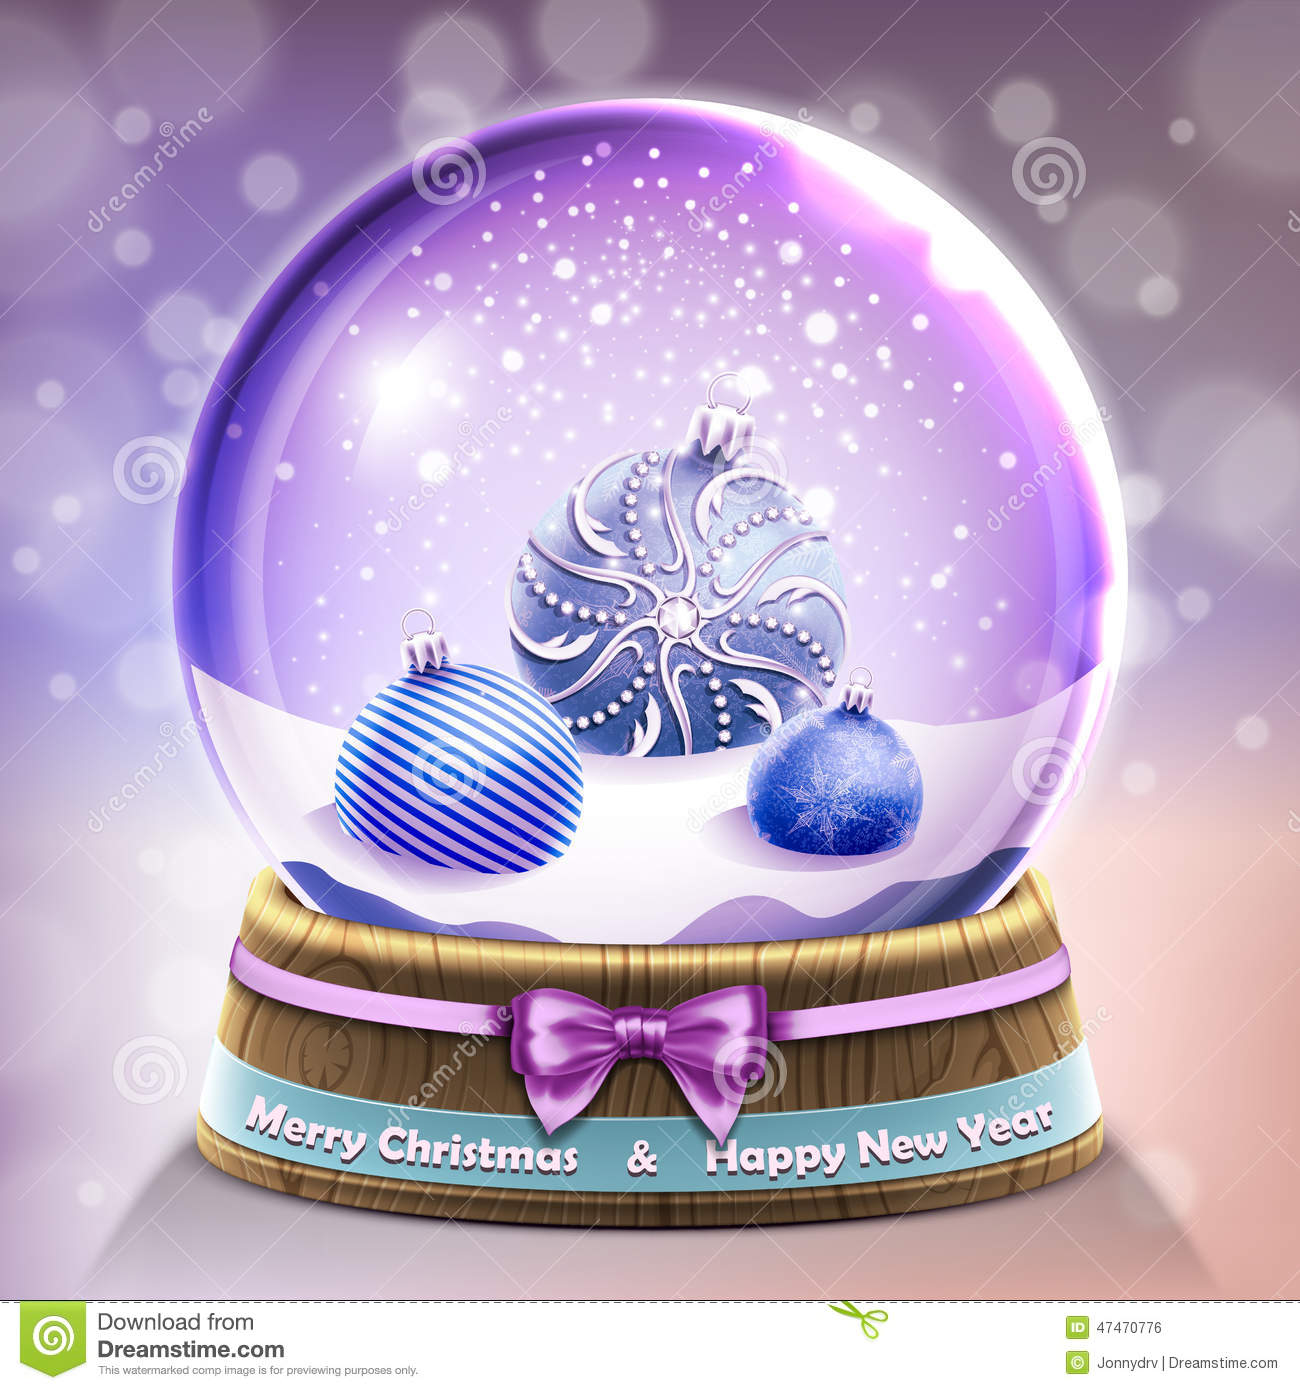 boule de cristal en verre de neige avec des boules de no l illustration de vecteur image 47470776. Black Bedroom Furniture Sets. Home Design Ideas